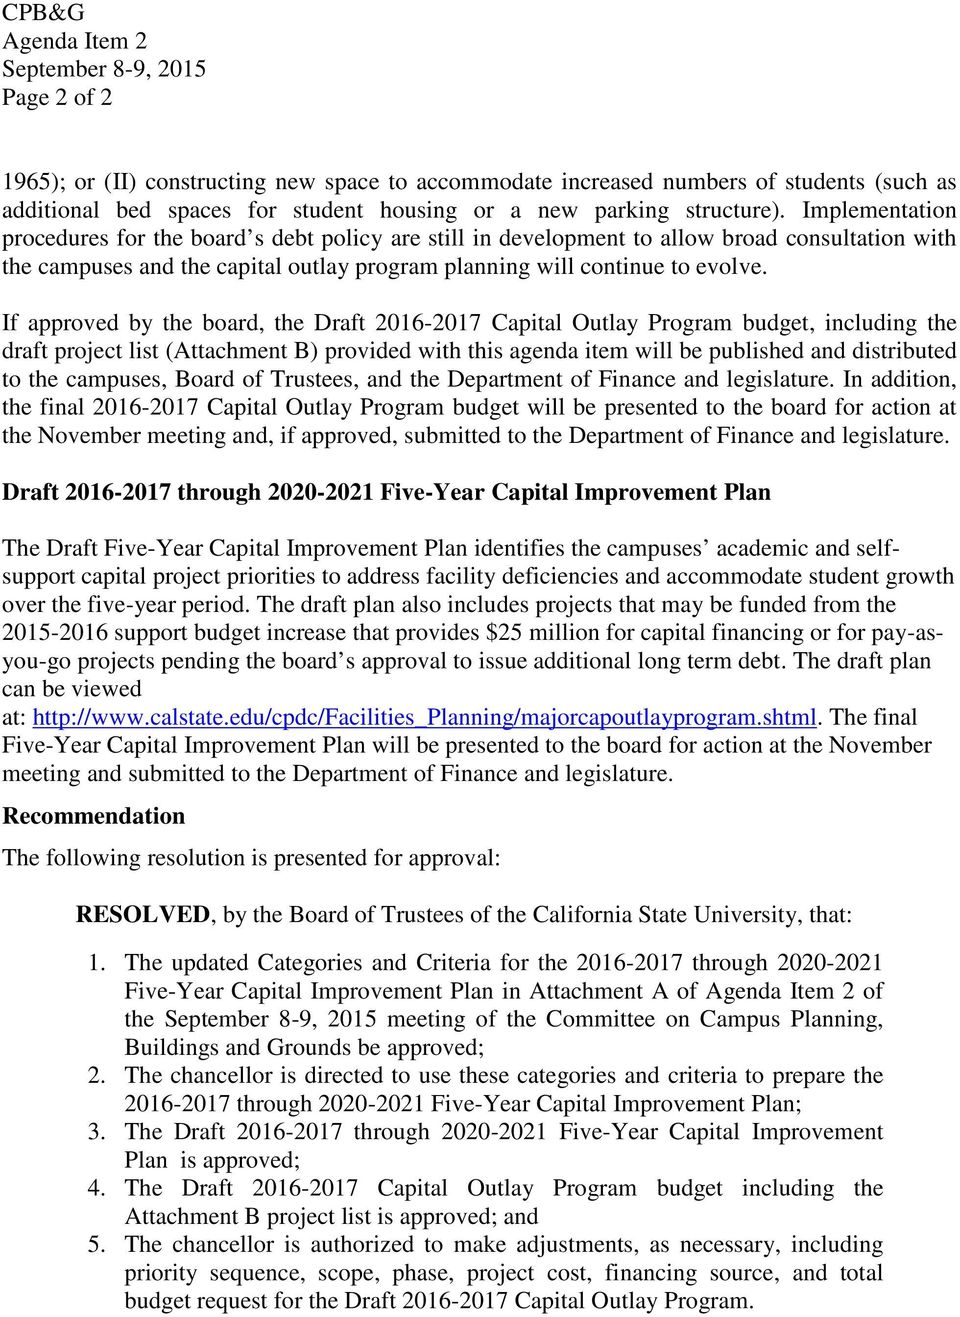 If approved by the board, the Draft 2016-2017 Capital Outlay Program budget, including the draft project list (Attachment B) provided with this agenda item will be published and distributed to the